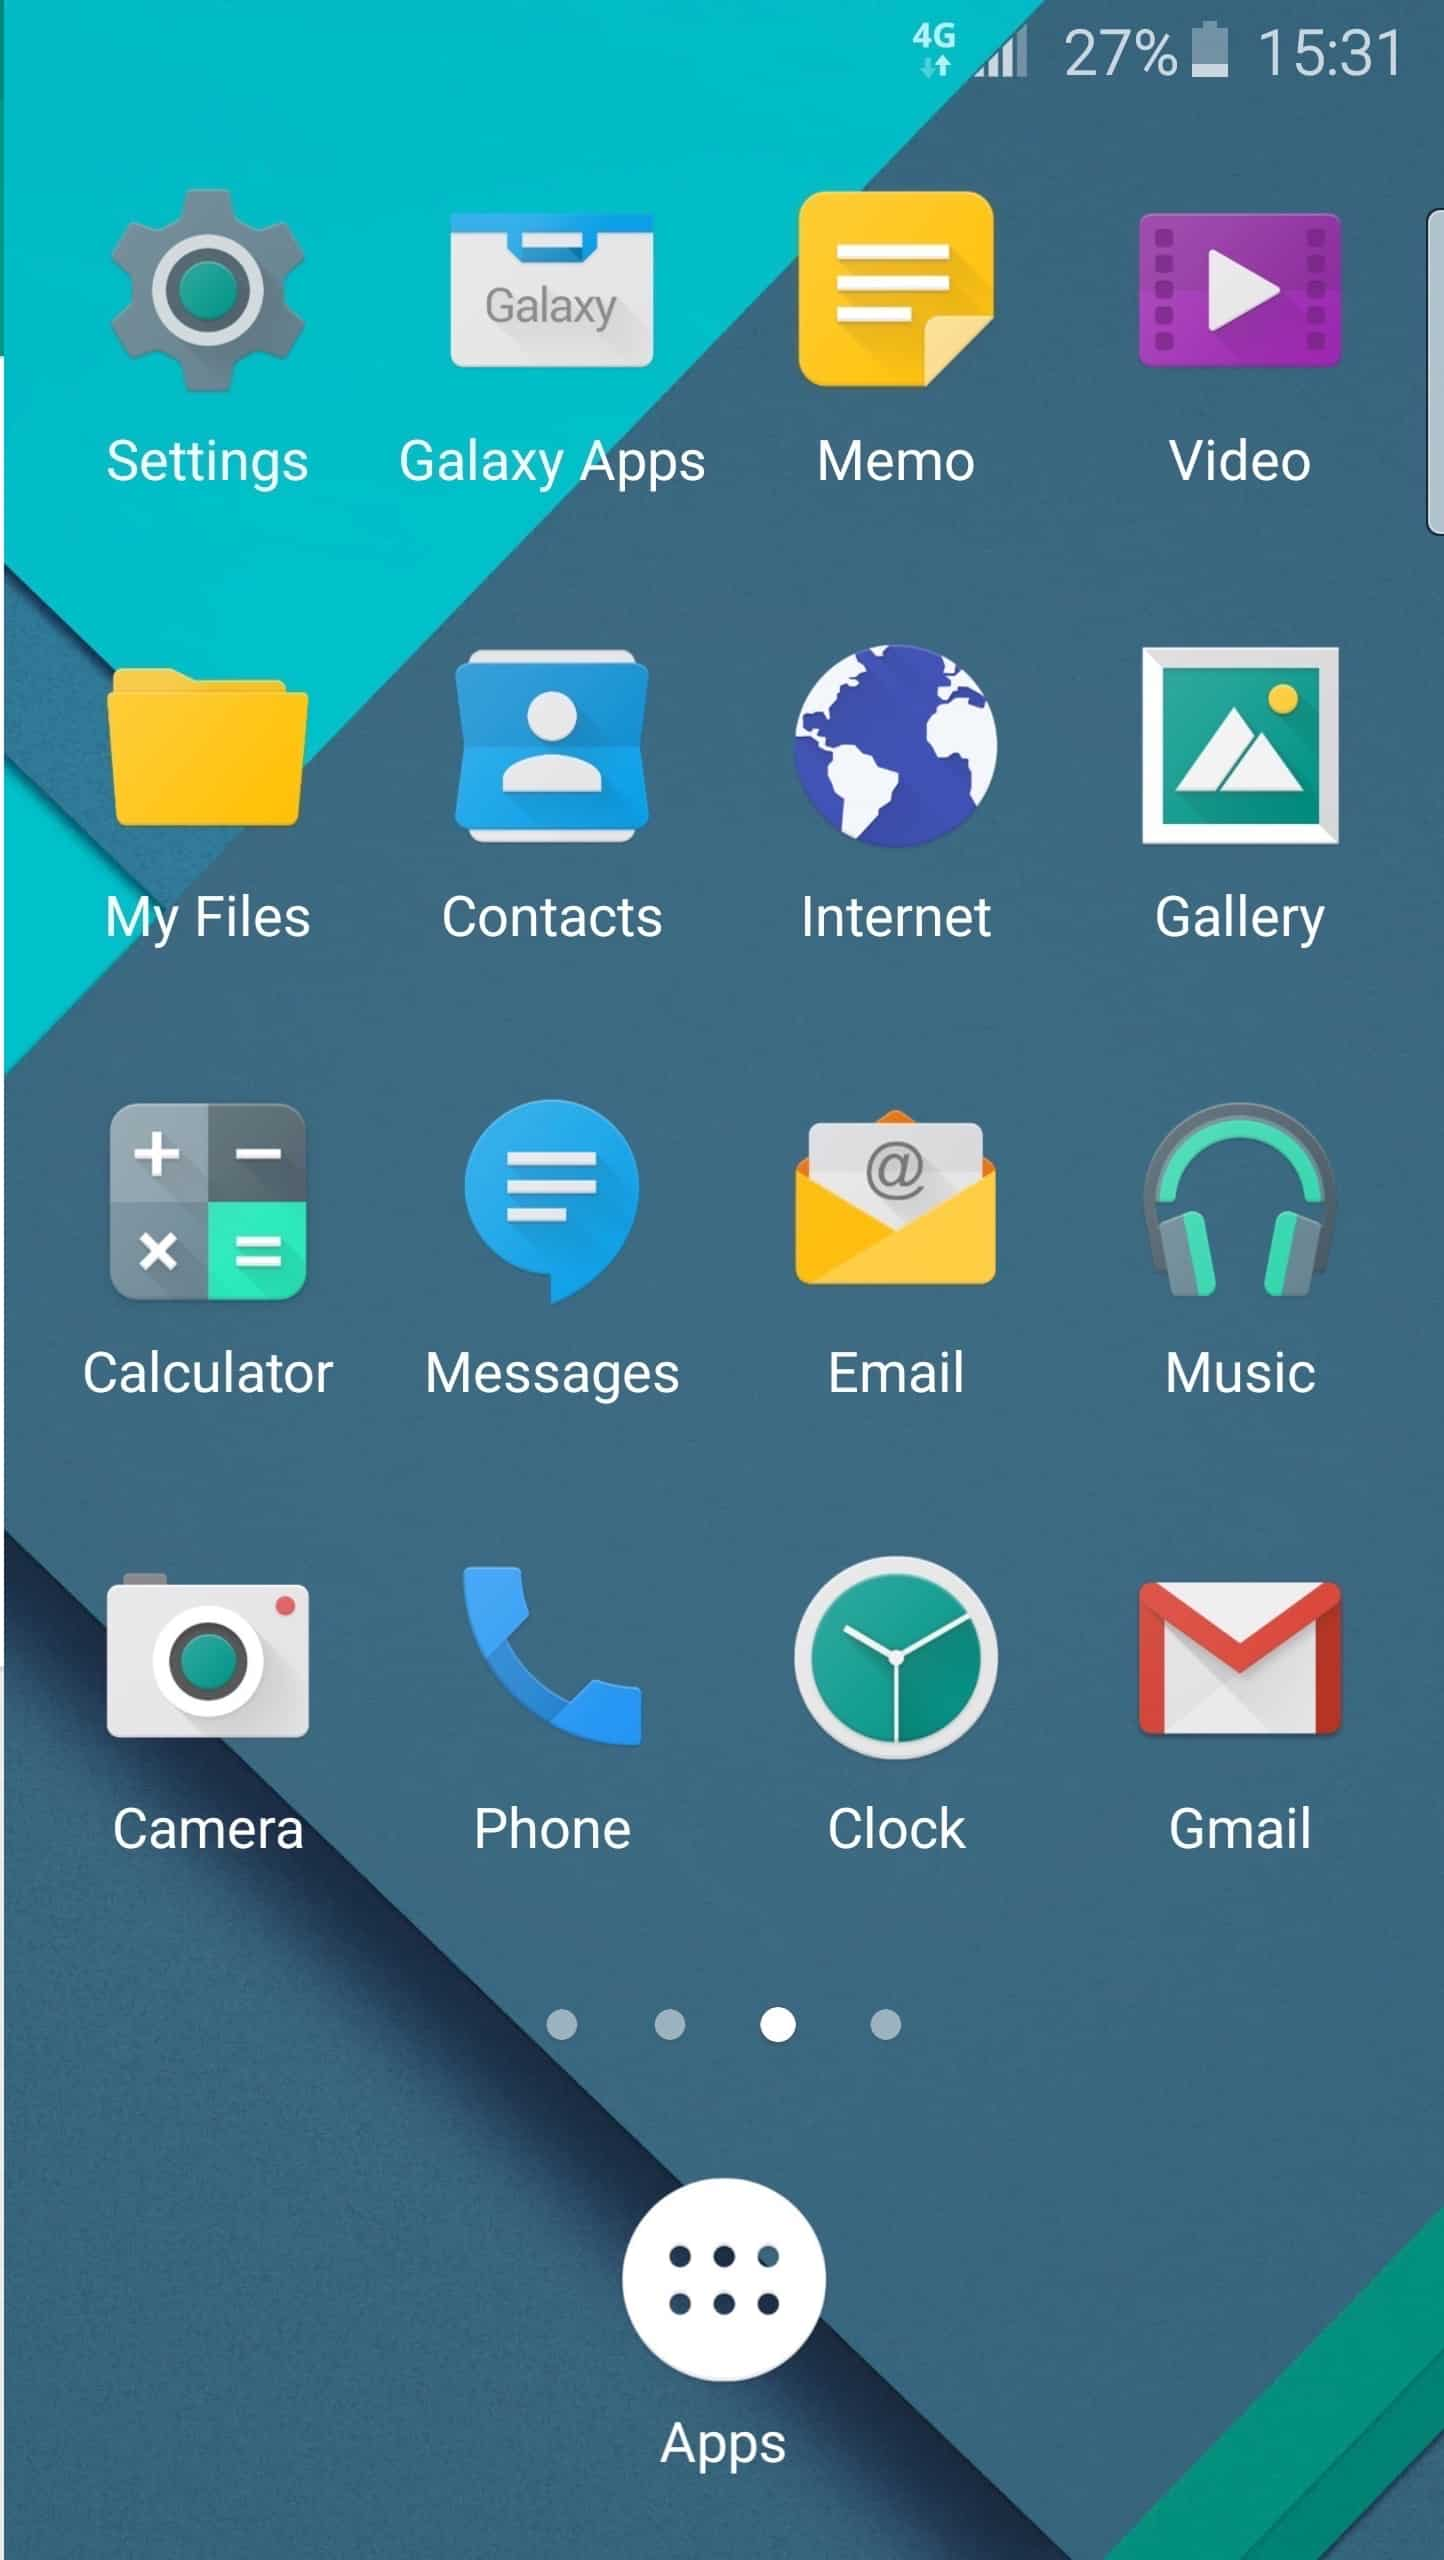 Themes in gmail apps - Material Theme Now Available For Galaxy S6 And S6 Edge